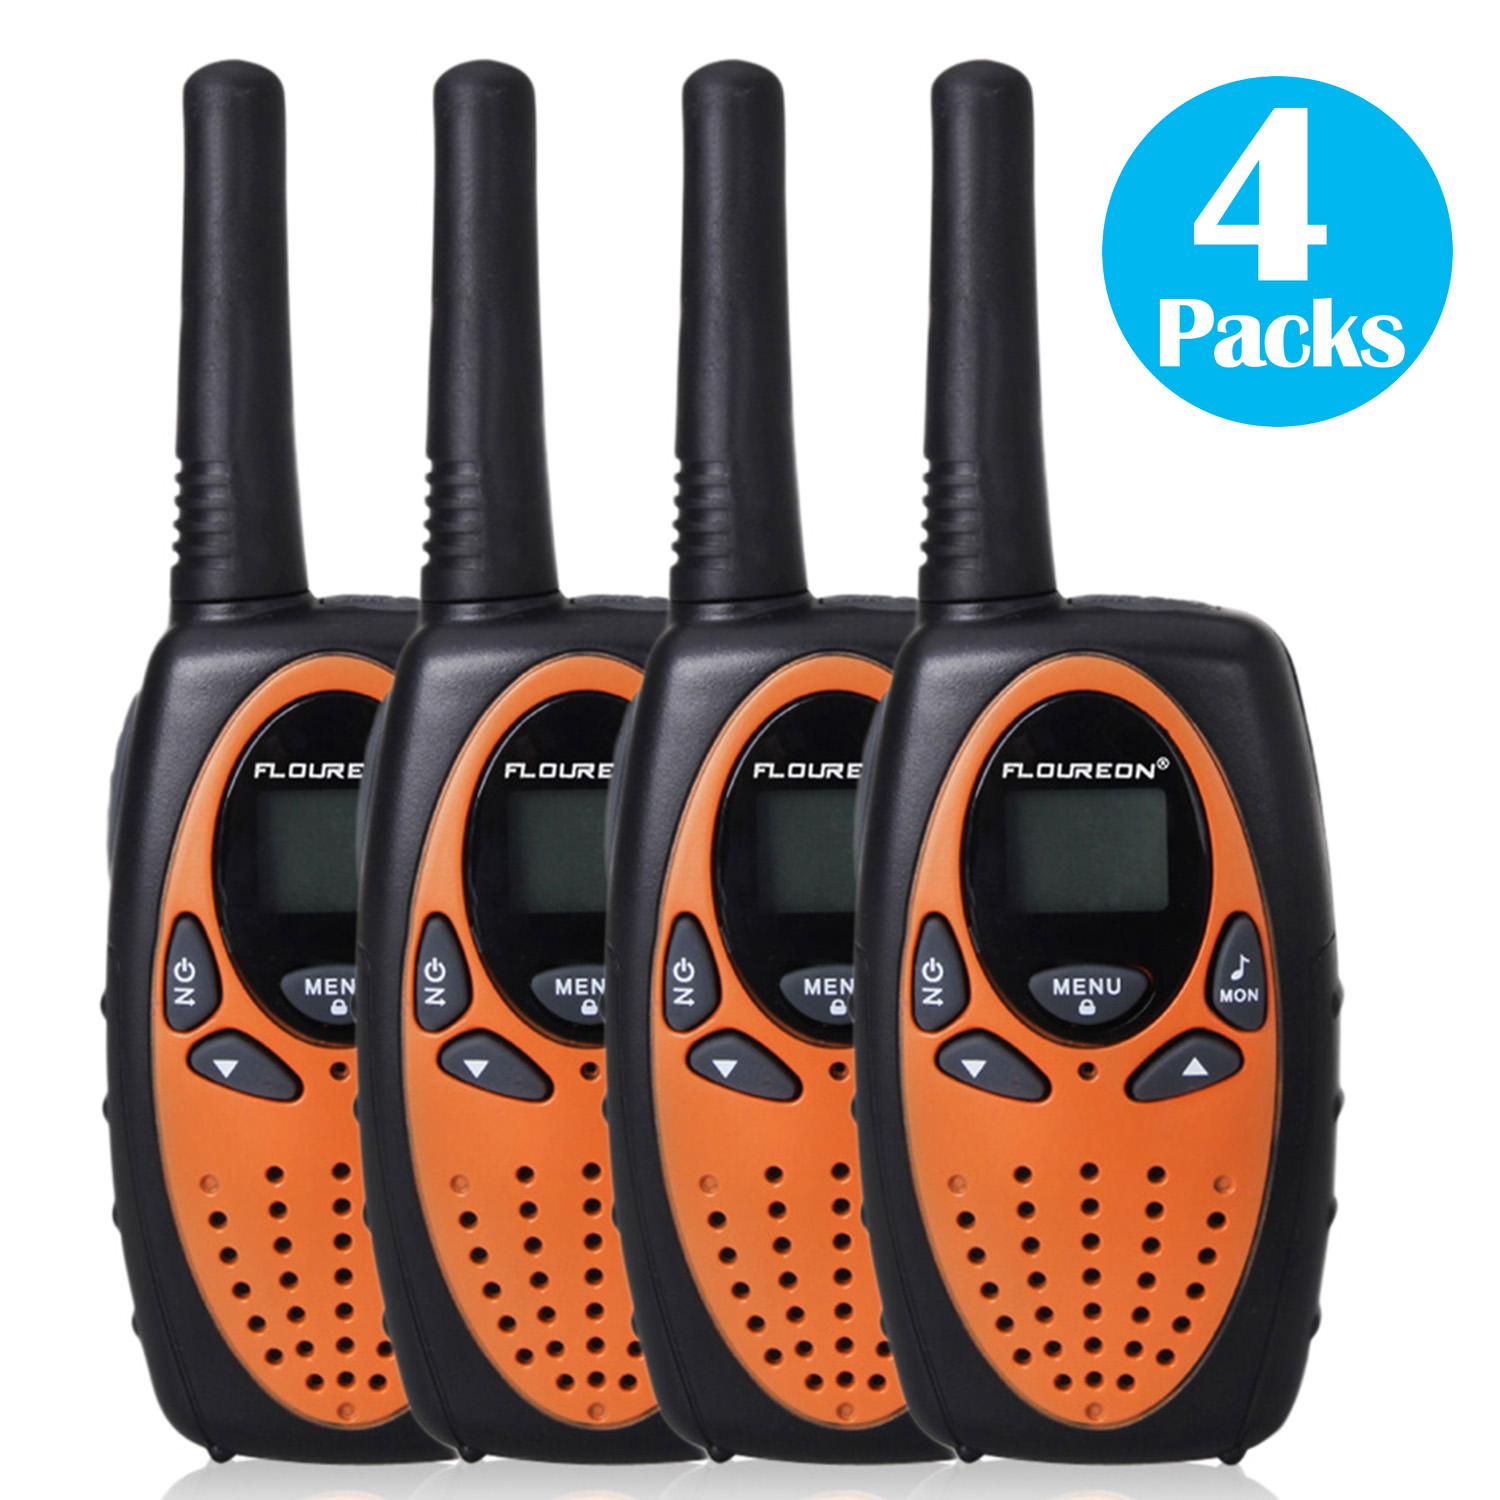 FLOUREON 22 Channel 4 Pack UHF462-467MHz Two-Way Radios 3KM Interphone Walkie Talkie 0range US